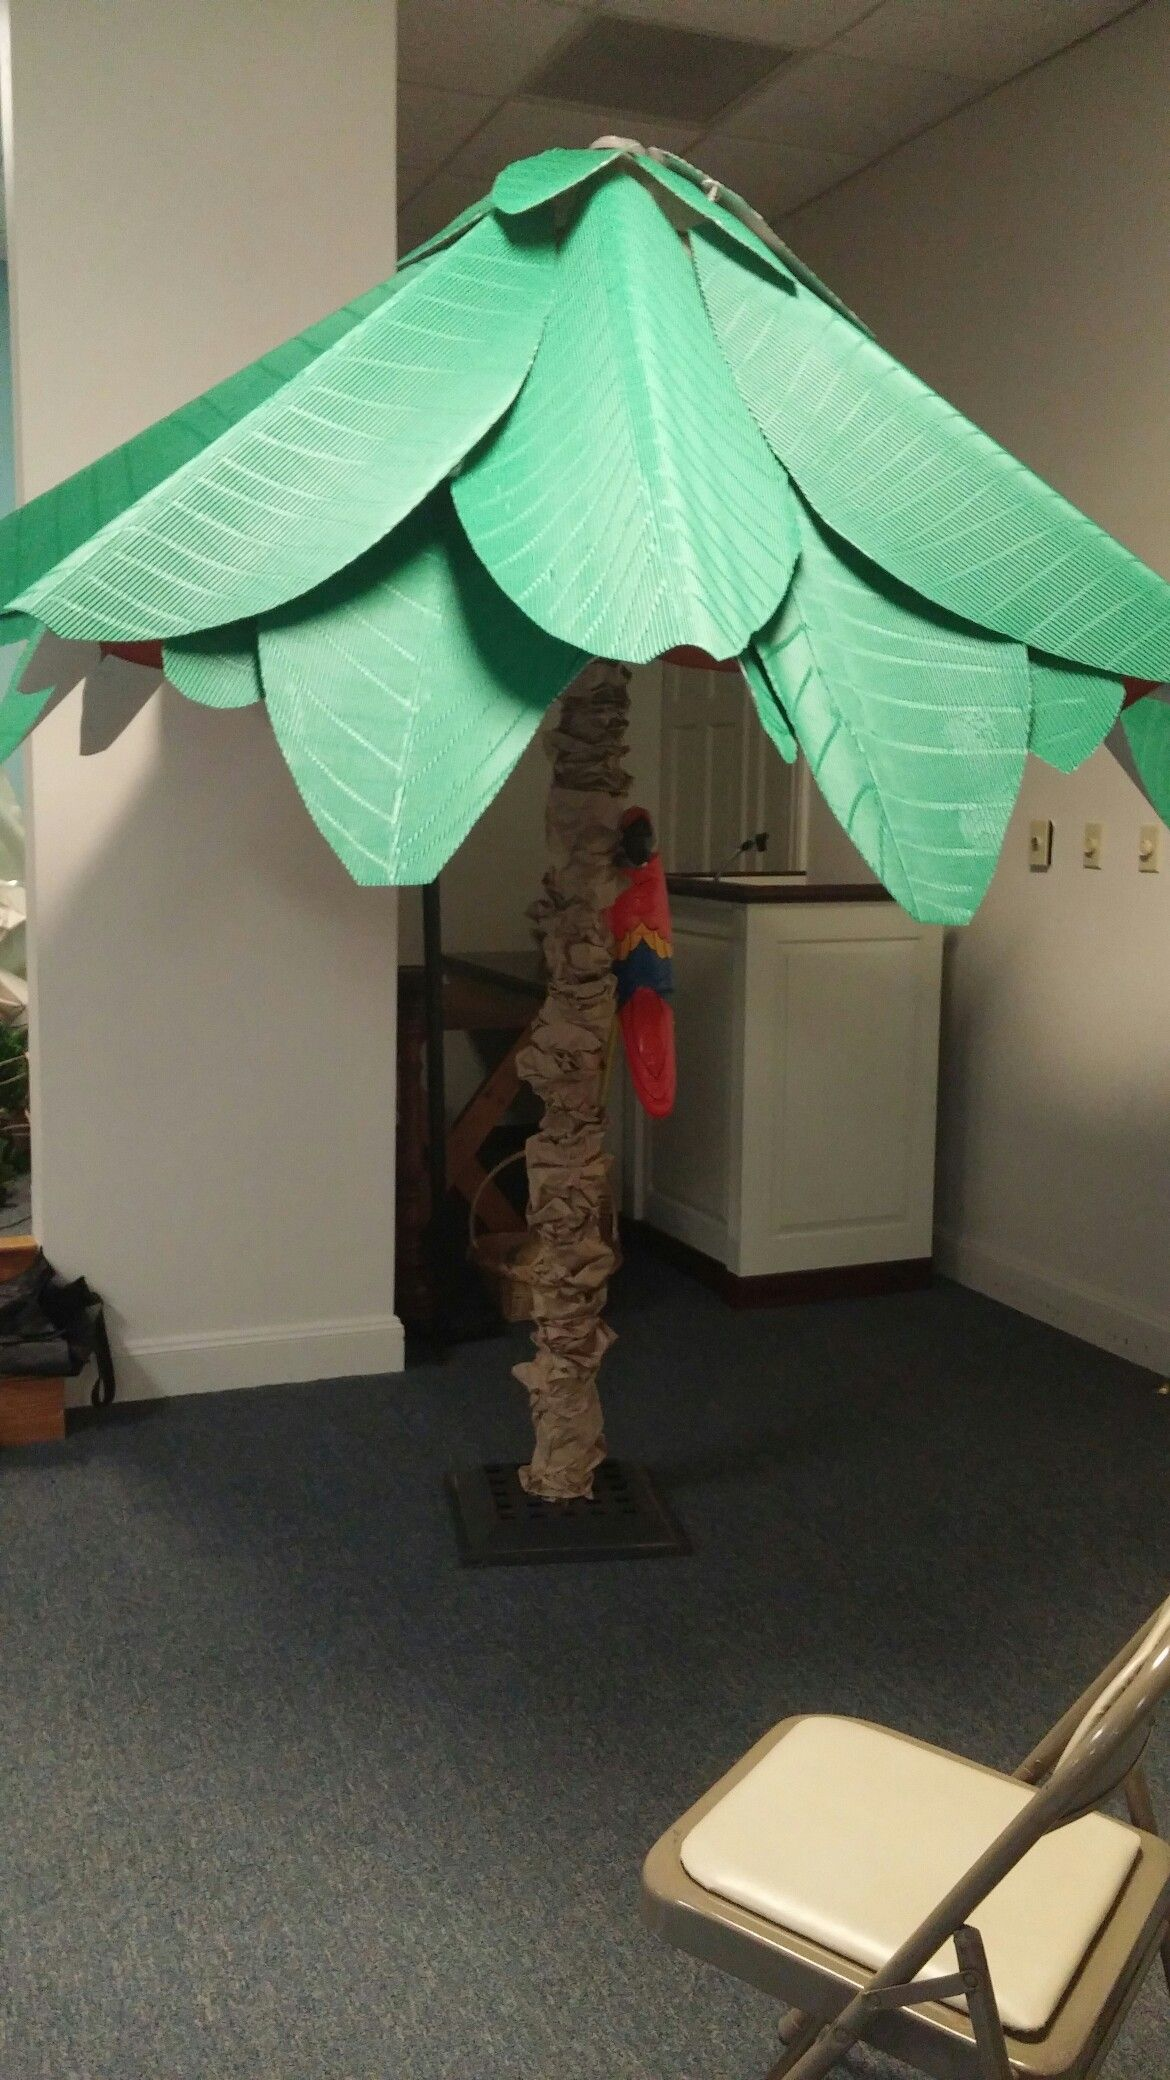 Shipwrecked Vbs Deck Umbrella Covered In Brown Paper